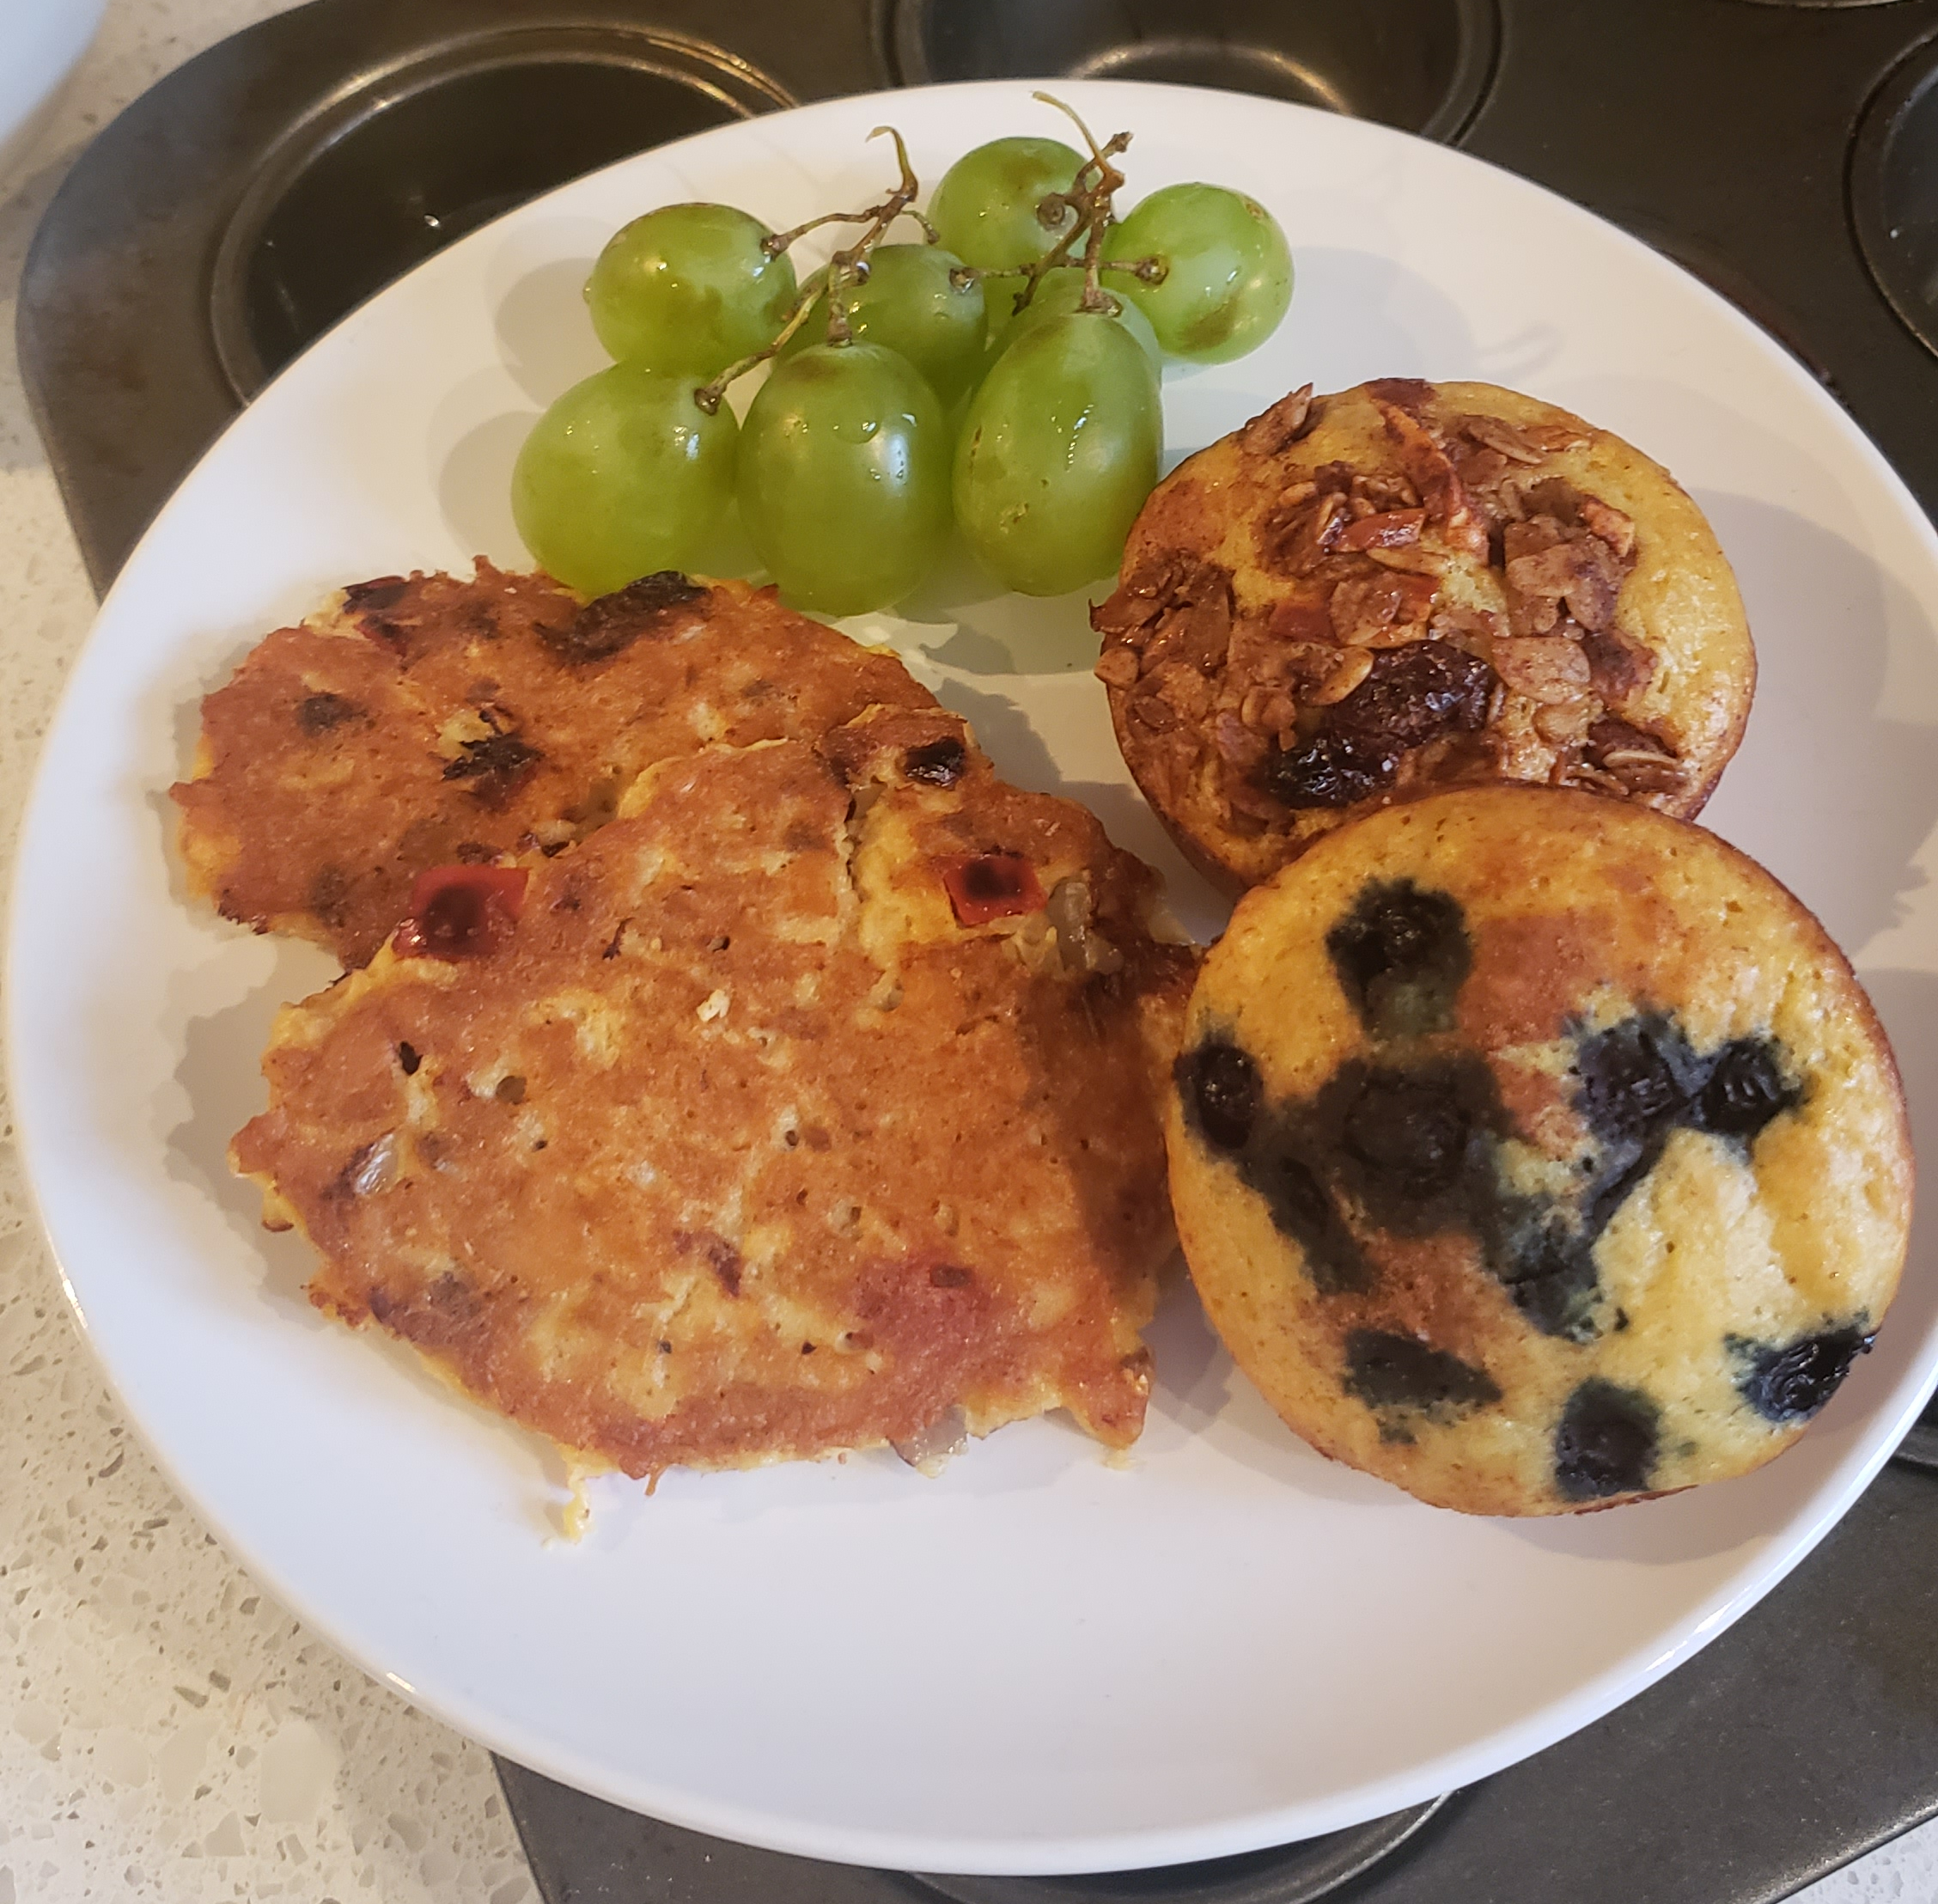 A plate with pancake muffins, salmon cakes and grapes.